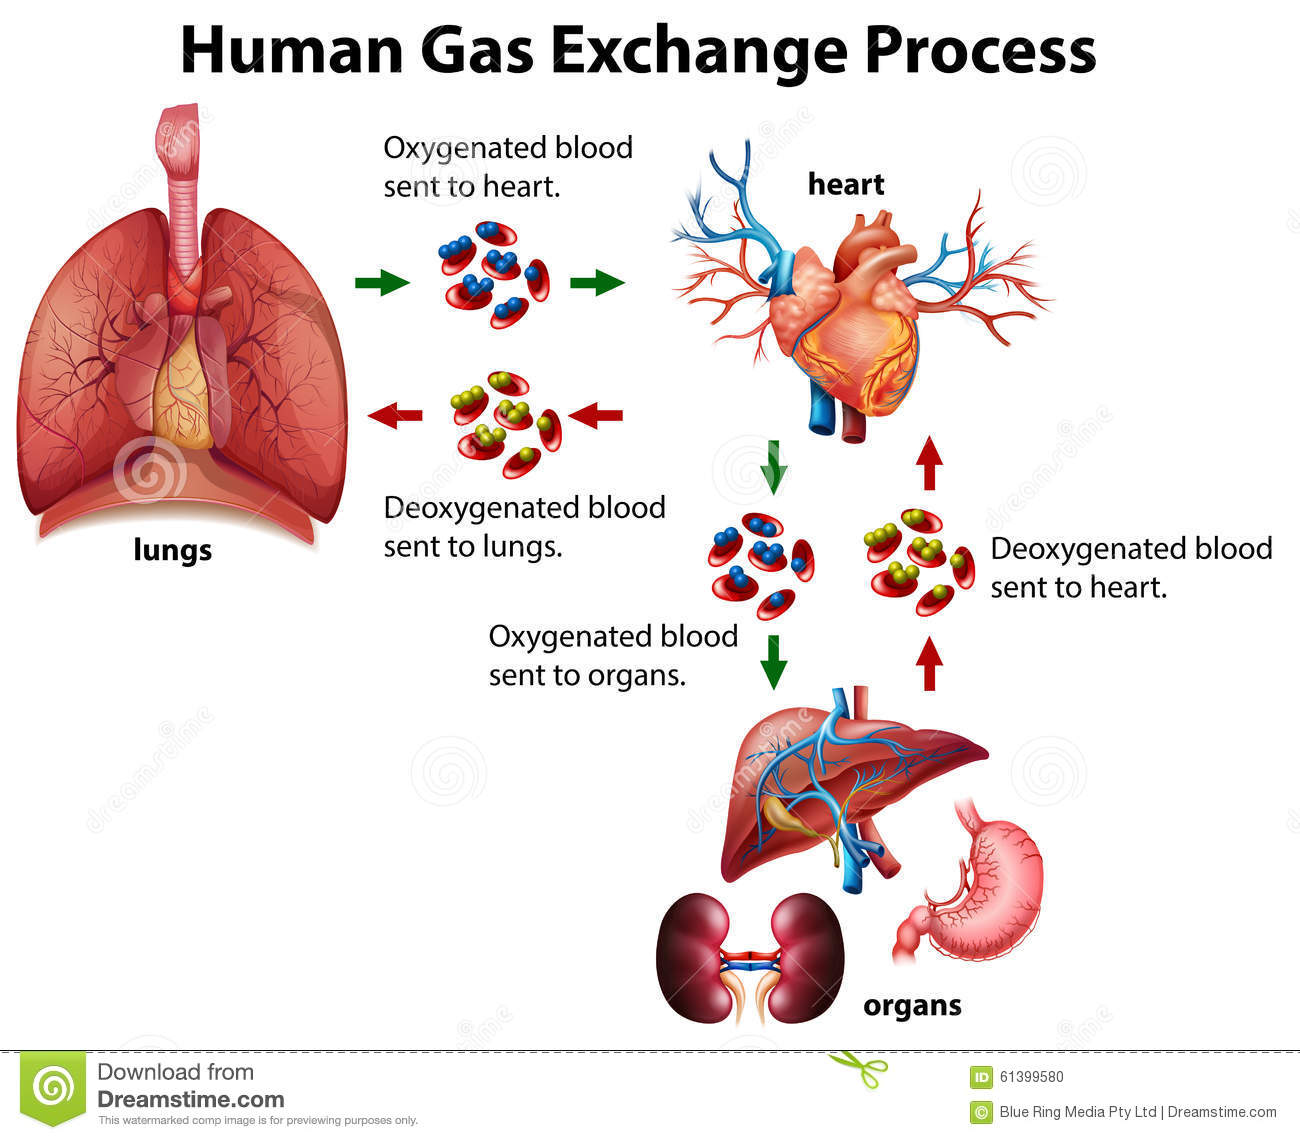 exchange of gasses The exchange of gases across the membranes of the capillary and the muscle is referred to as diffusion and is known as internal respiration the carbon-dioxide is then taken to the lungs via the heart in order to remove the carbon-dioxide and receive oxygen again (external respiration).